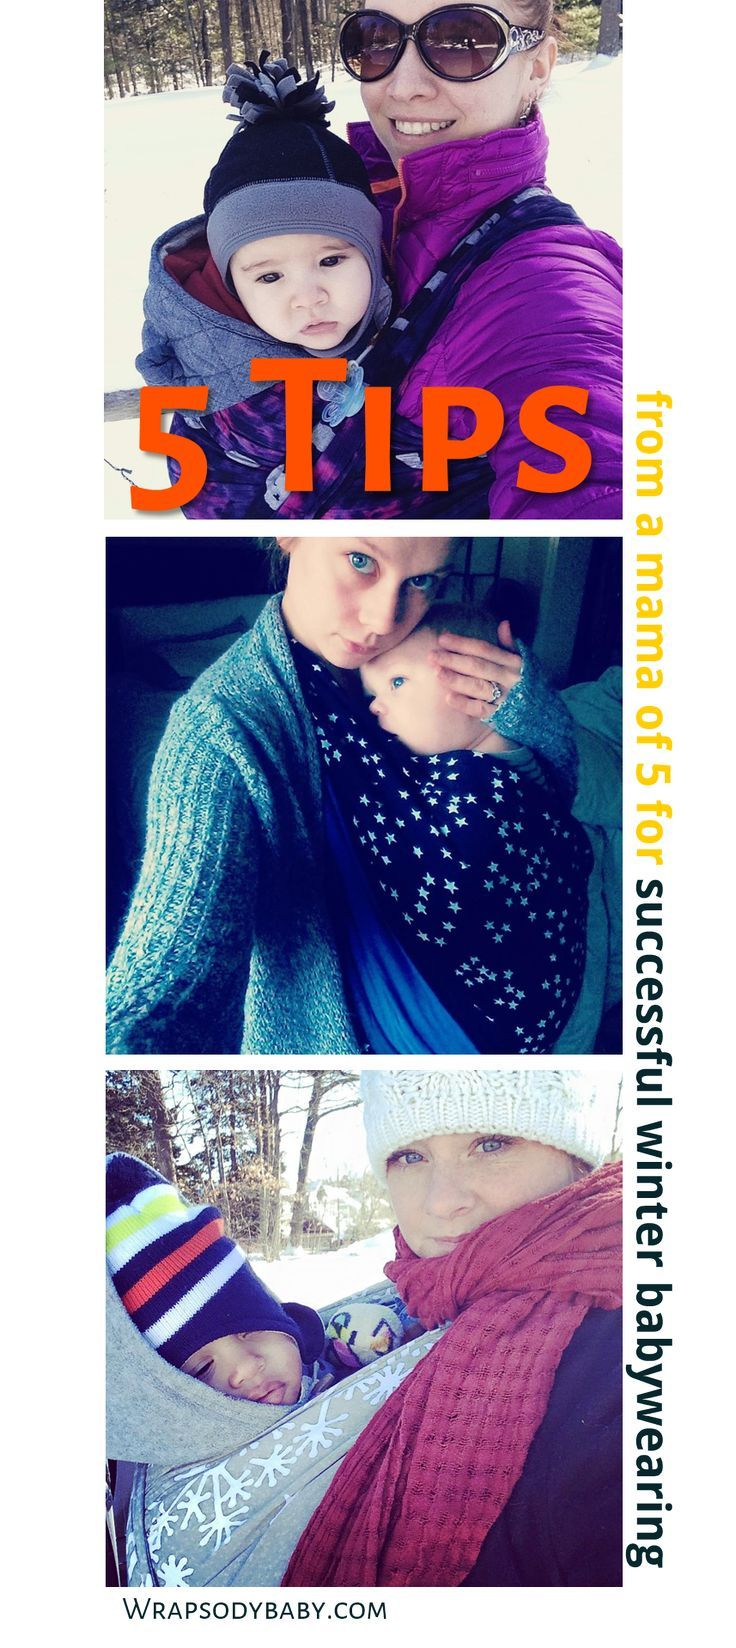 Top 5 Tips for Winter Babywearing || Wow! We are in the midst of an epic storm cycle — winter babywearing with my 2-year-old has become imperative to keep him from getting lost in the snowdrifts! With the temperatures plummeting into single digits, I've had to pull out all my favorite winter babywearing tricks.: